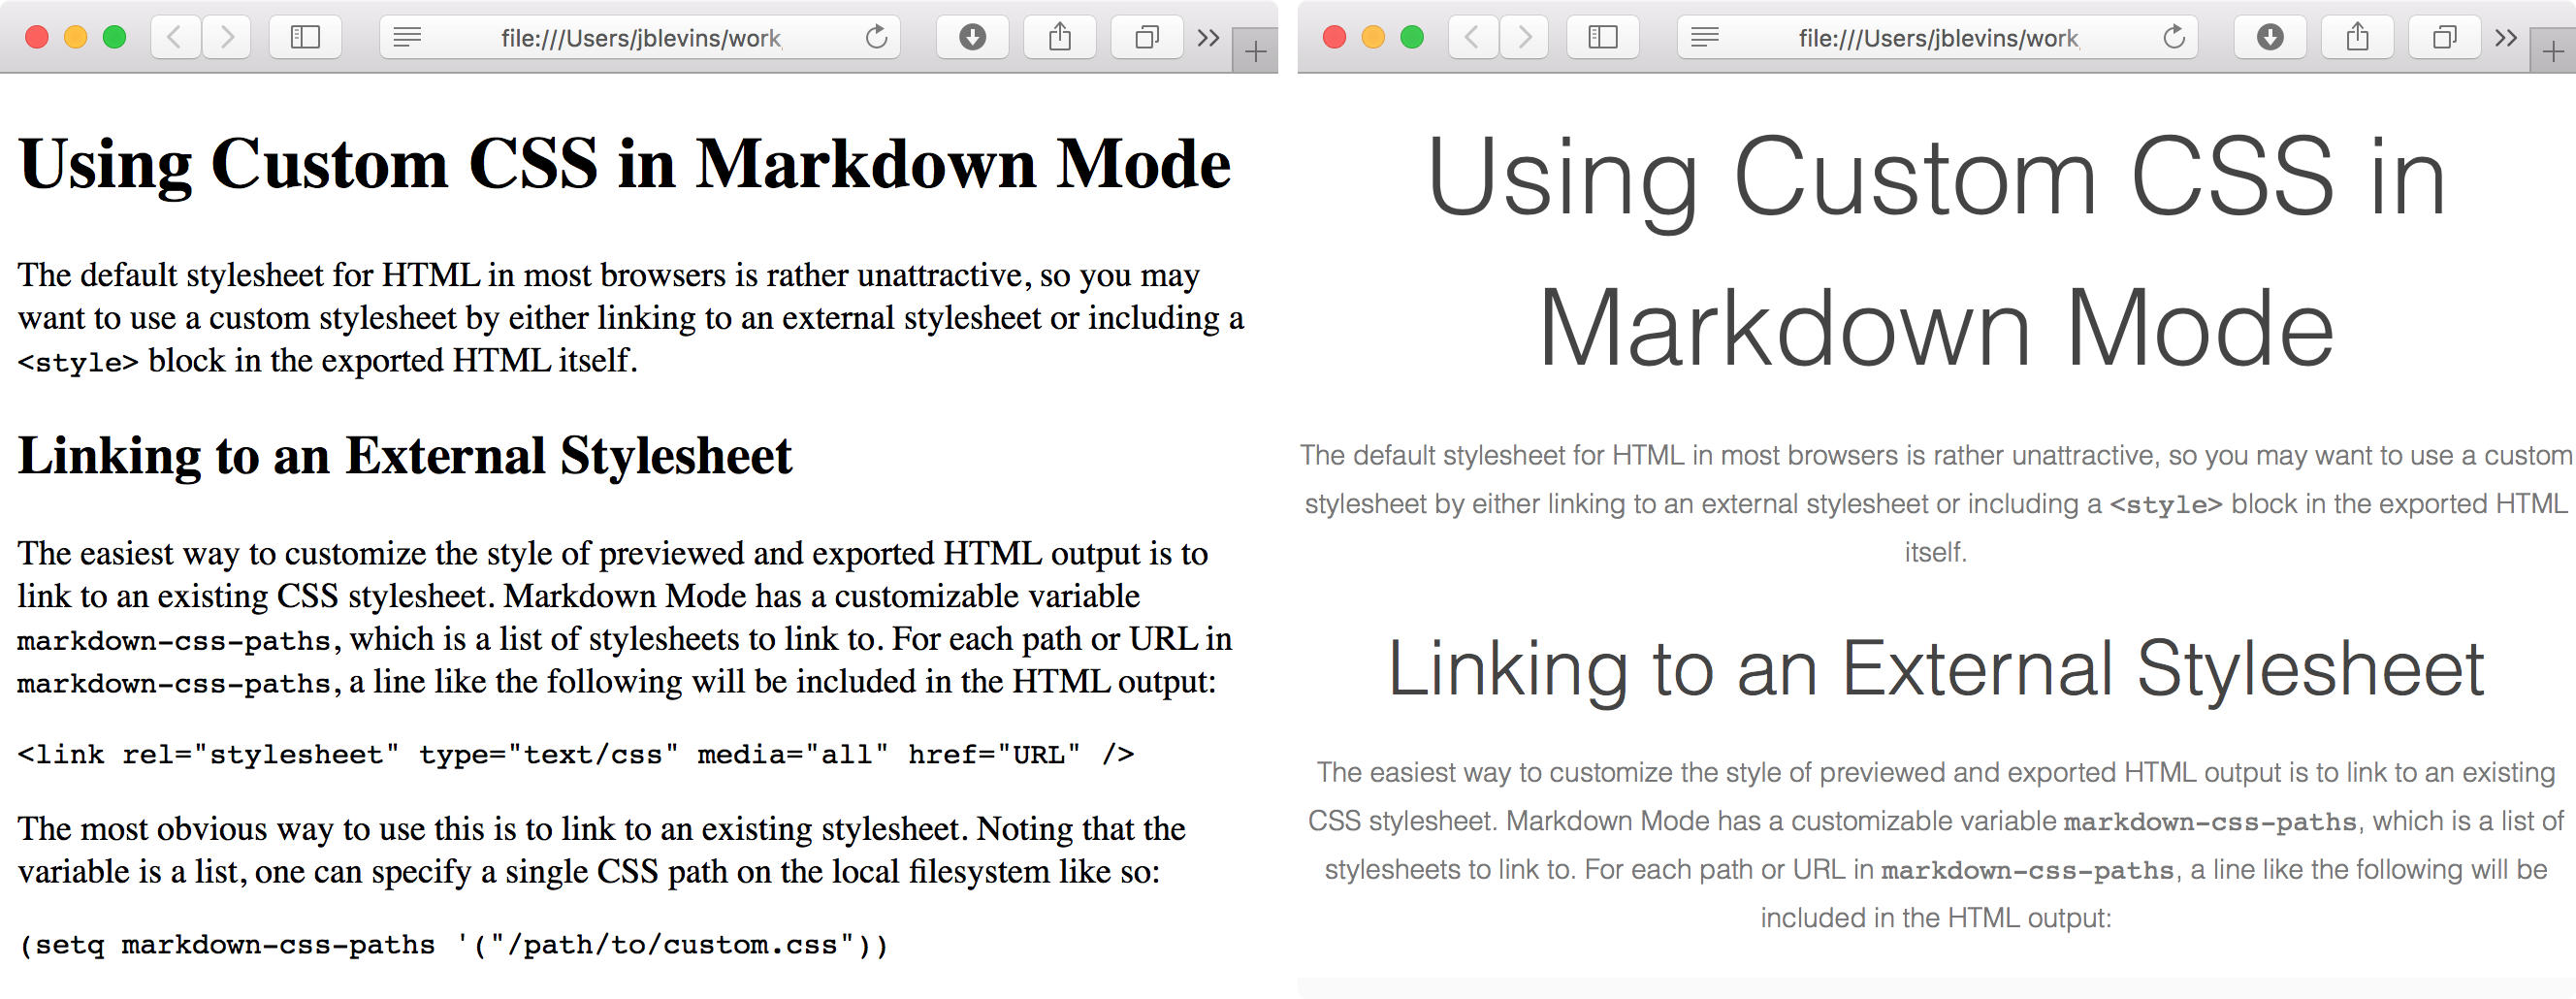 Using Custom CSS in Markdown Mode